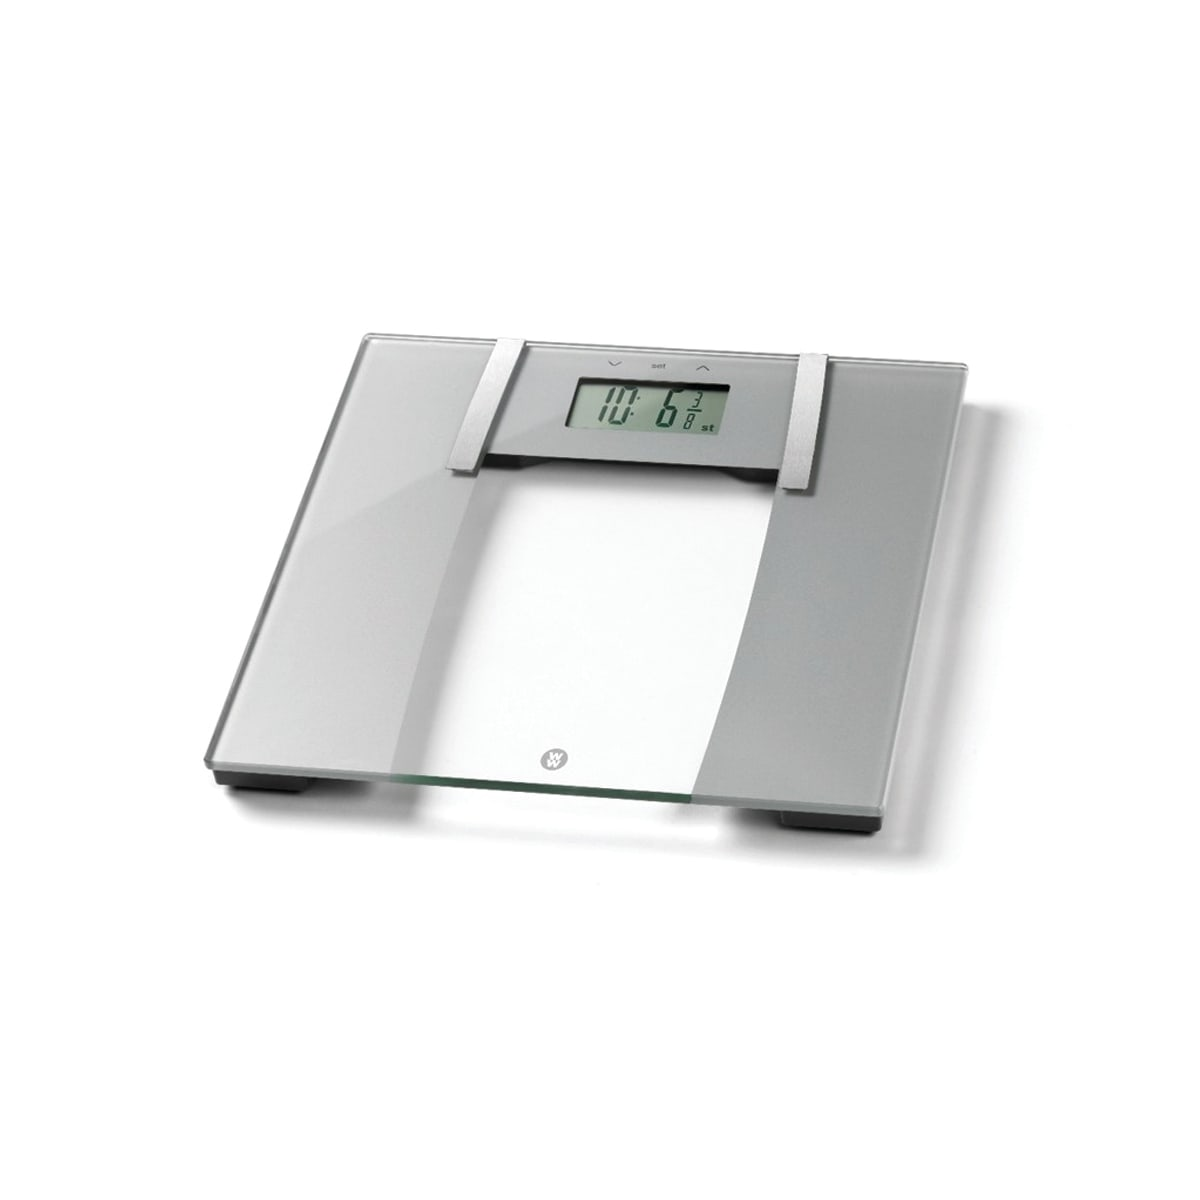 Ultra Slim Glass Body Analyser Scale, Accurately measures body weight, BMI, body water, bone mass and body fat, Weighs in stones, lbs, kgs